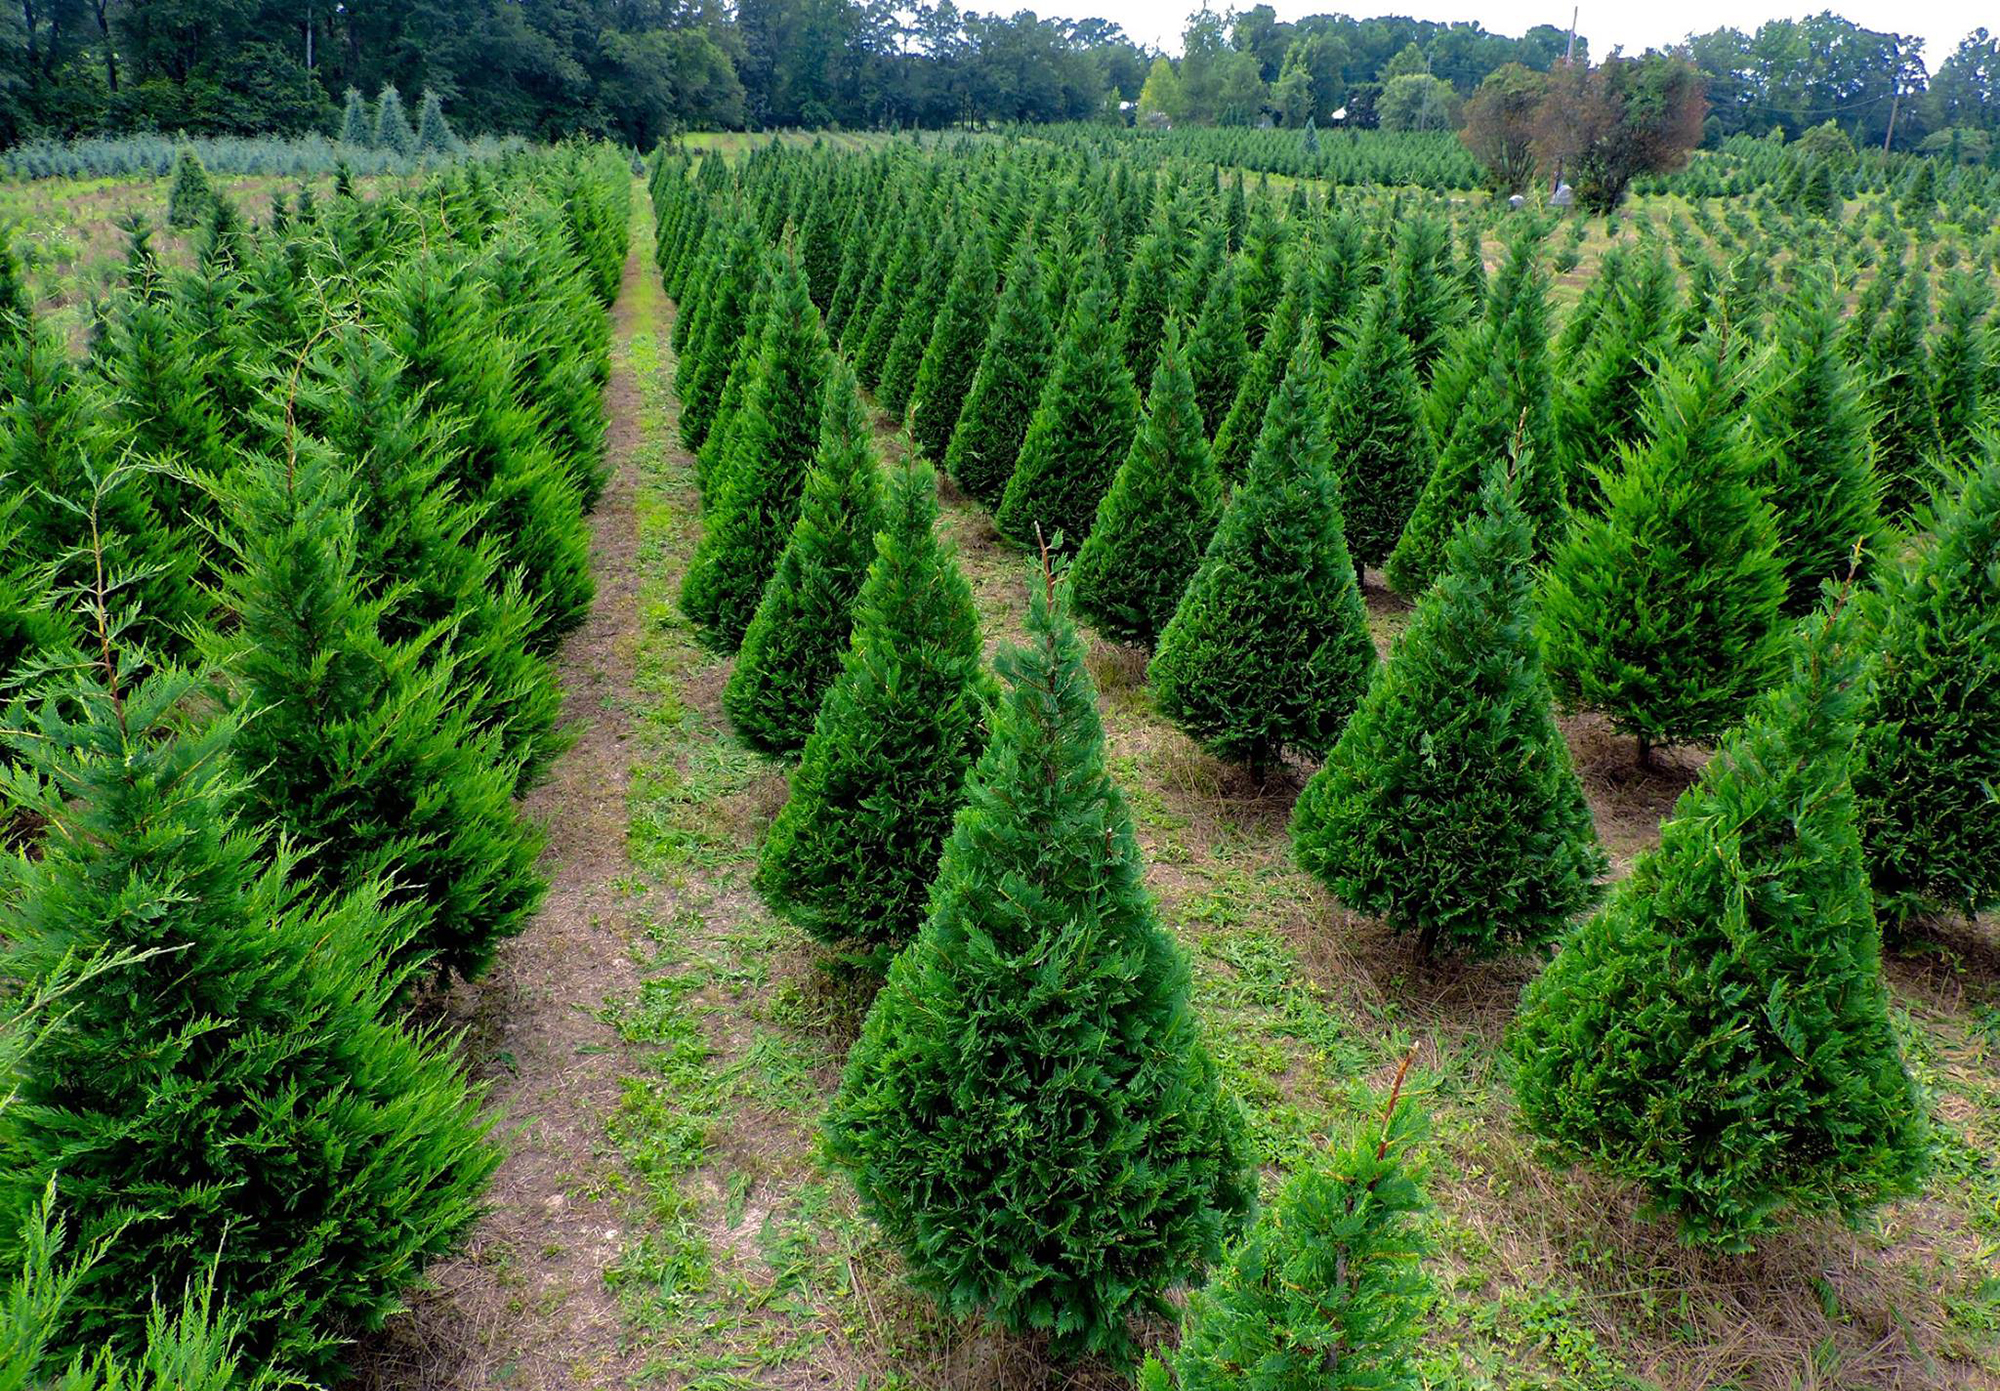 10 Best Christmas Tree Farms - Fun Christmas Tree Farms to ...